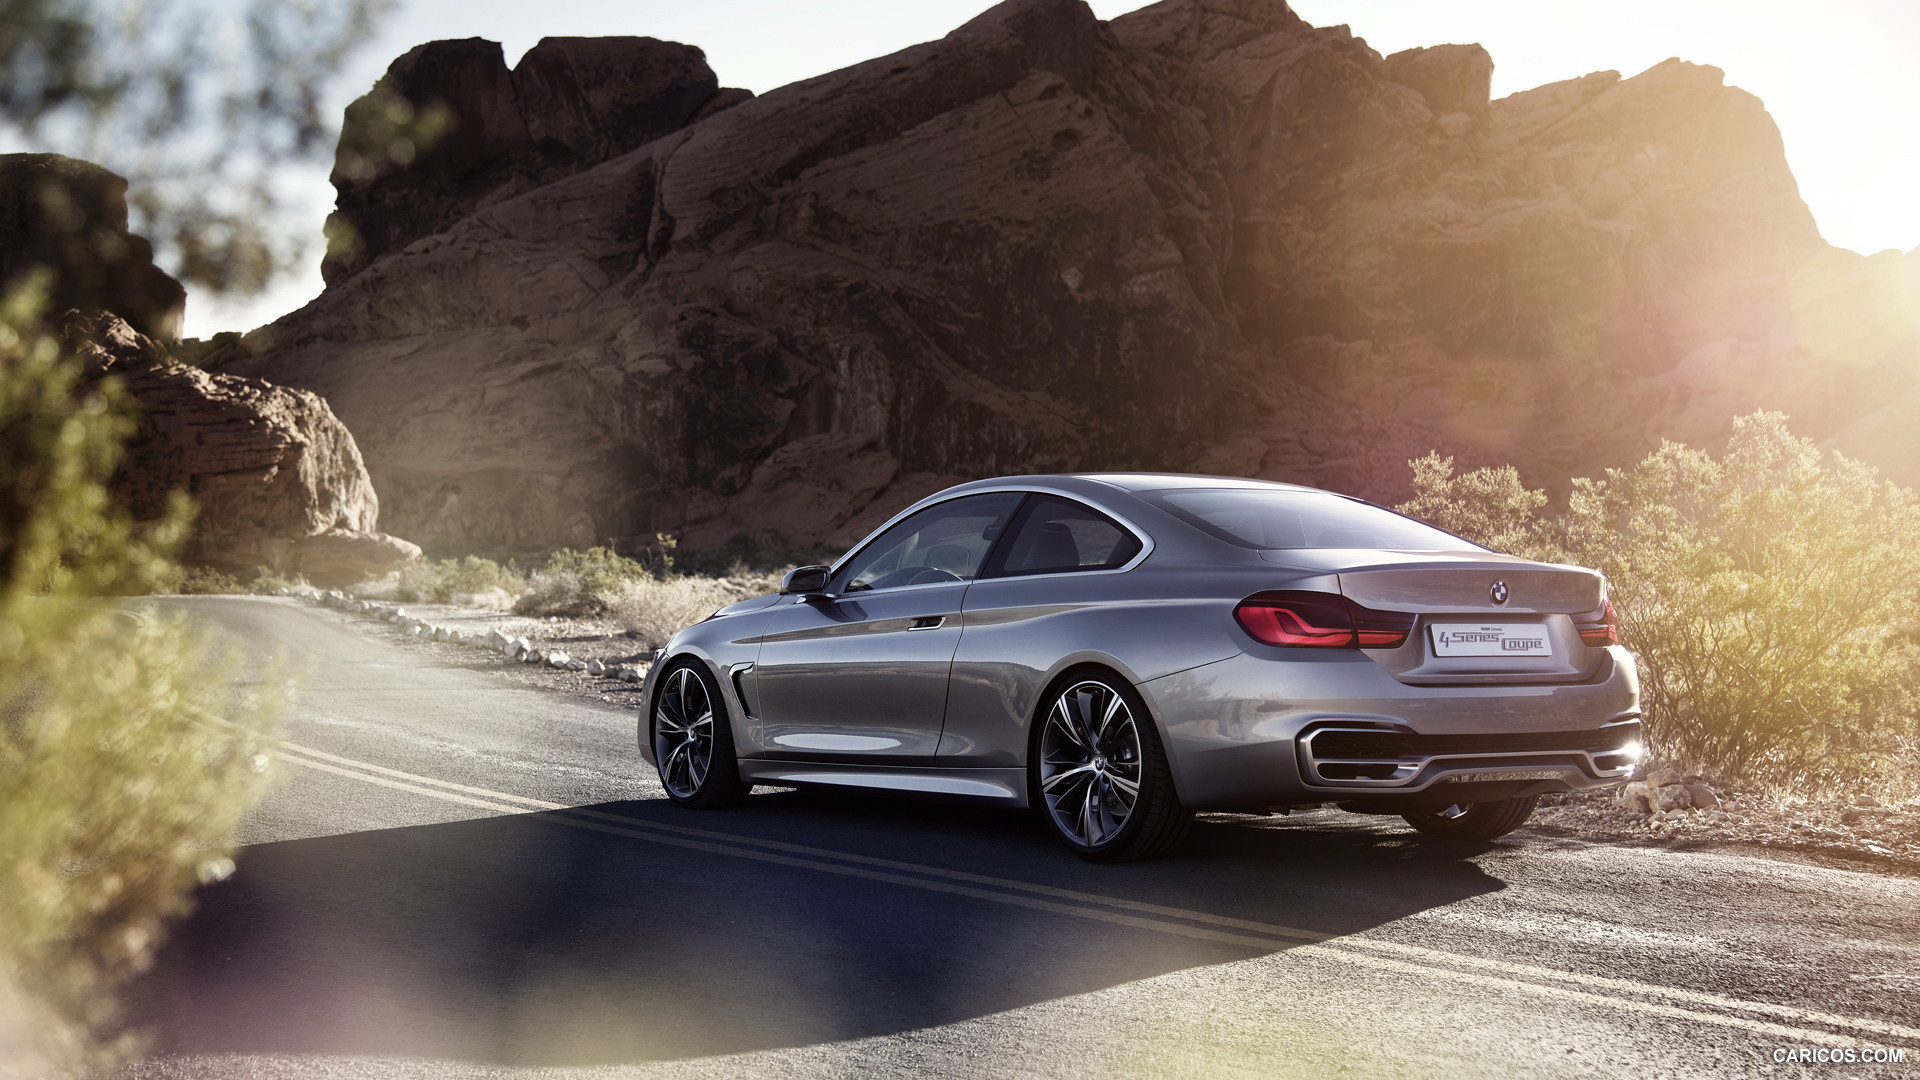 2013_bmw_4-series_coupe_concept_3_1920x1